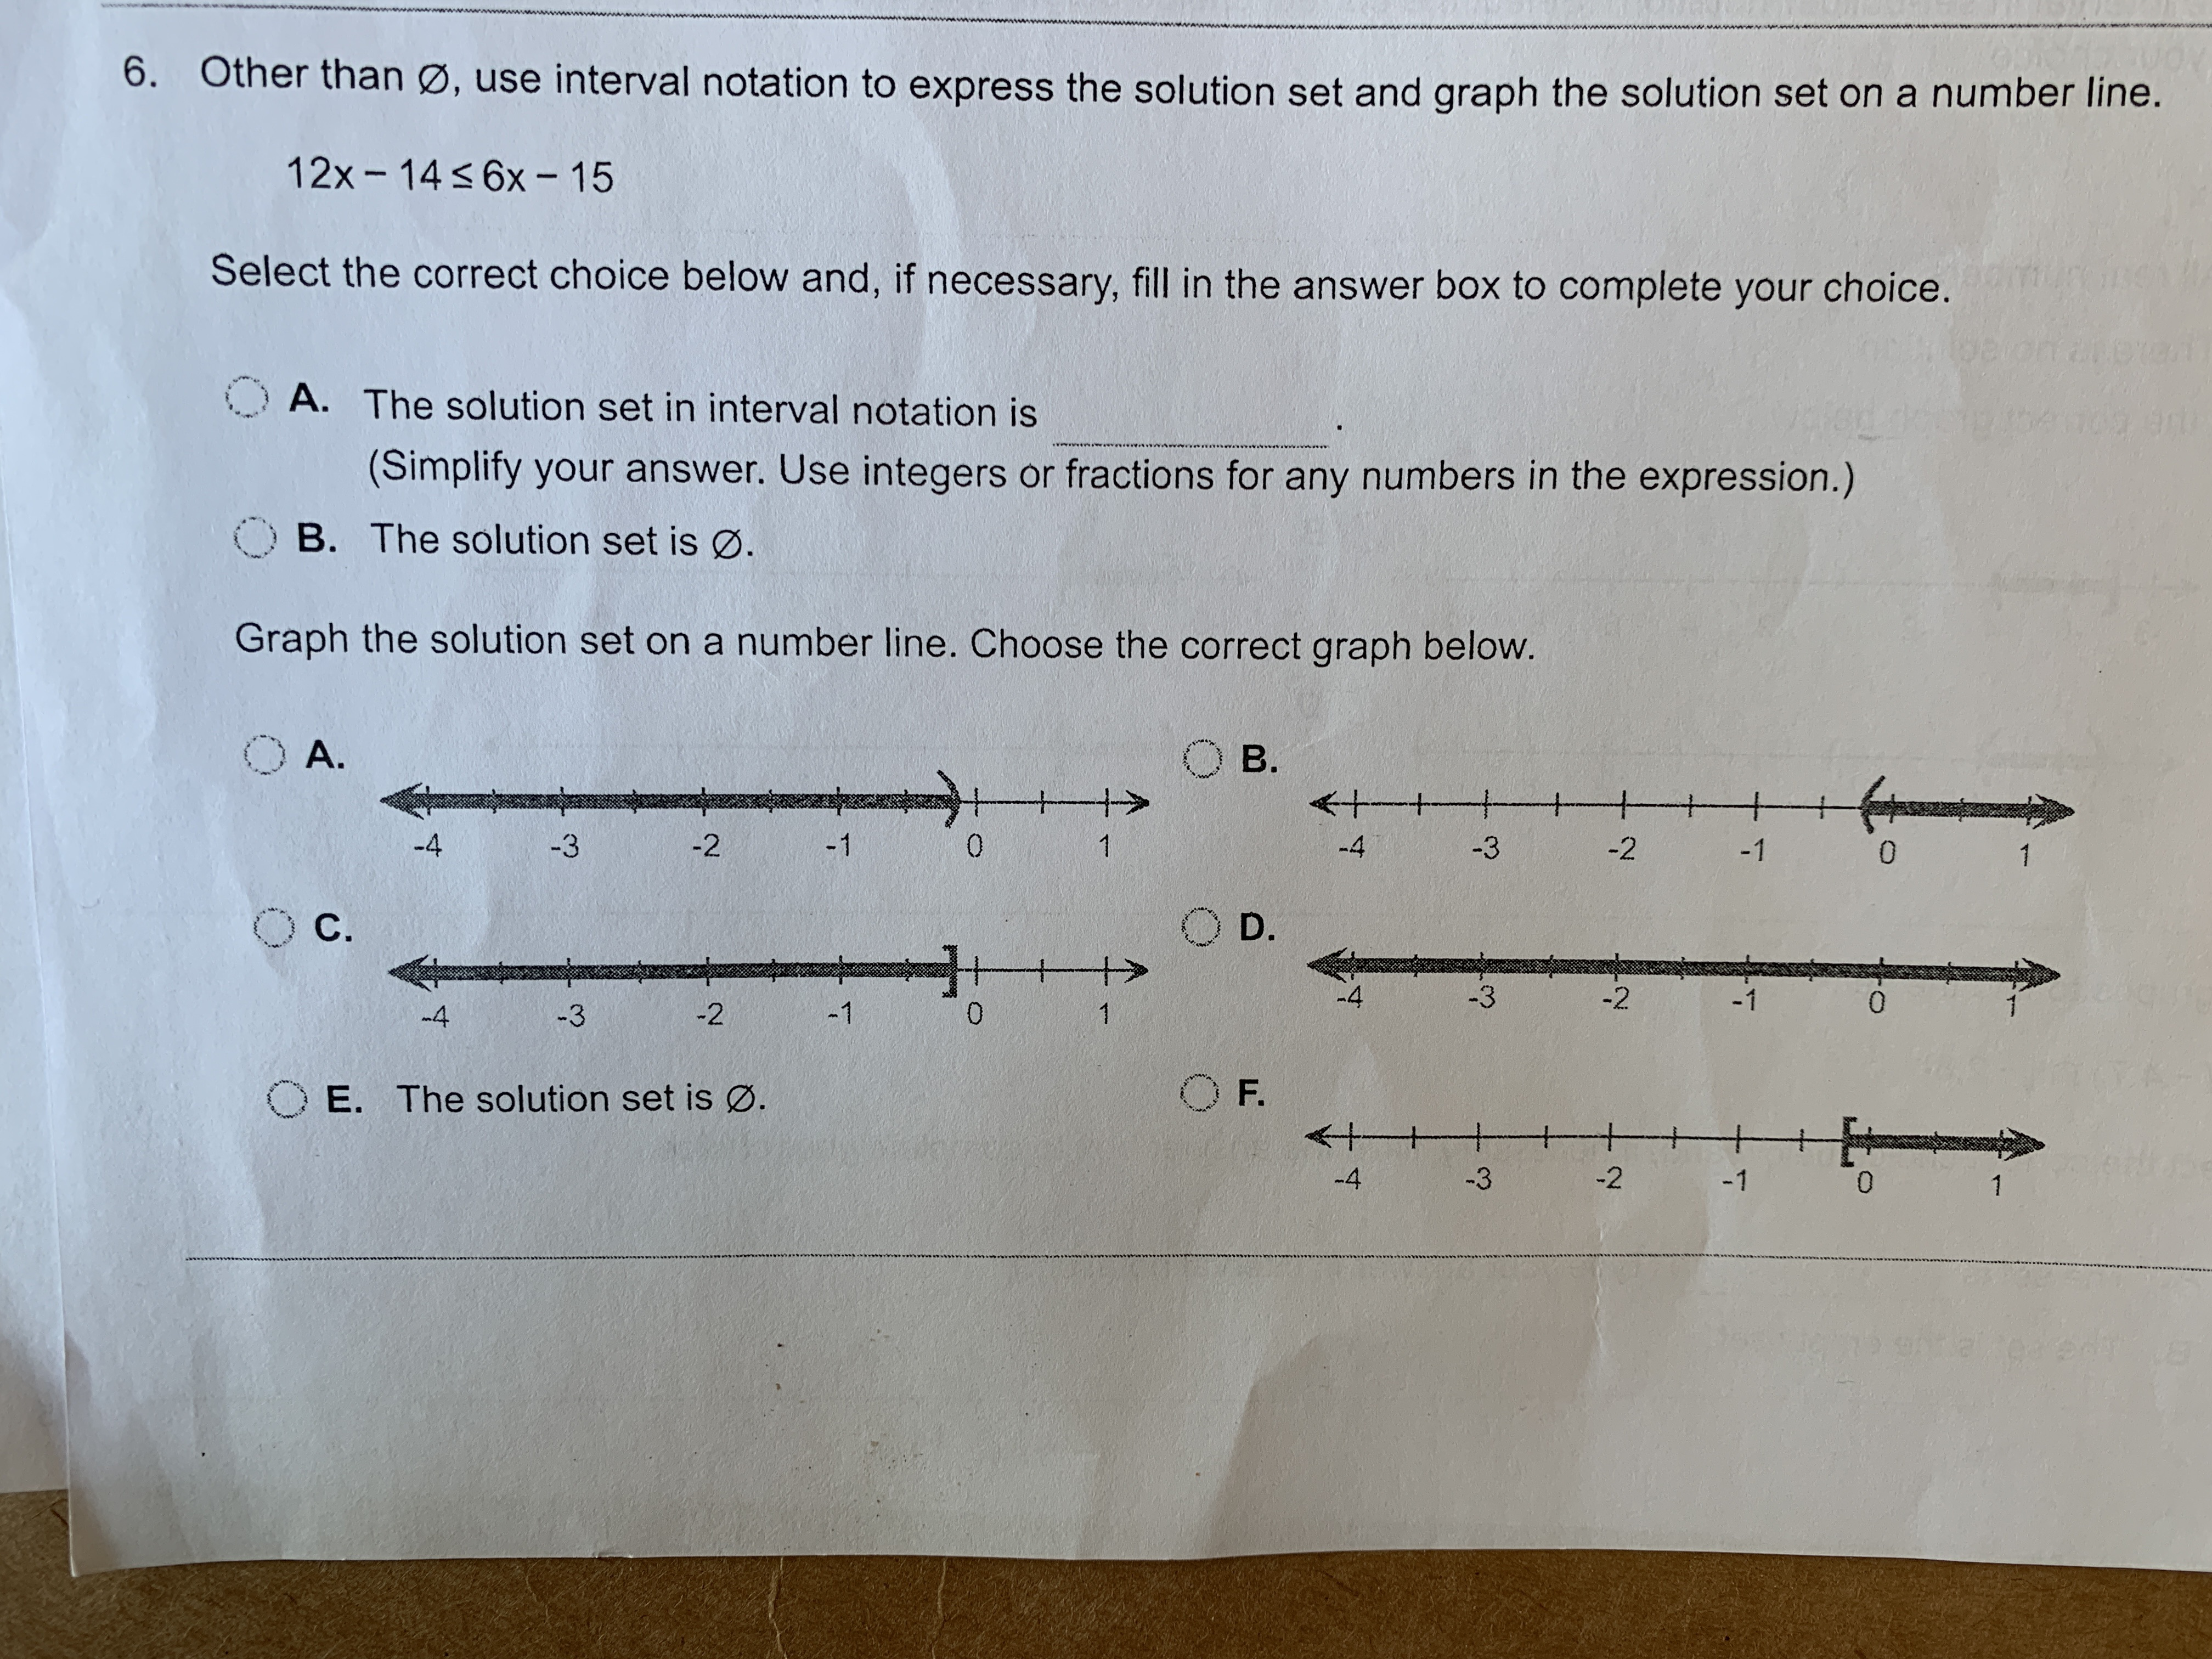 Answered 6 Other Than Use Interval Notation